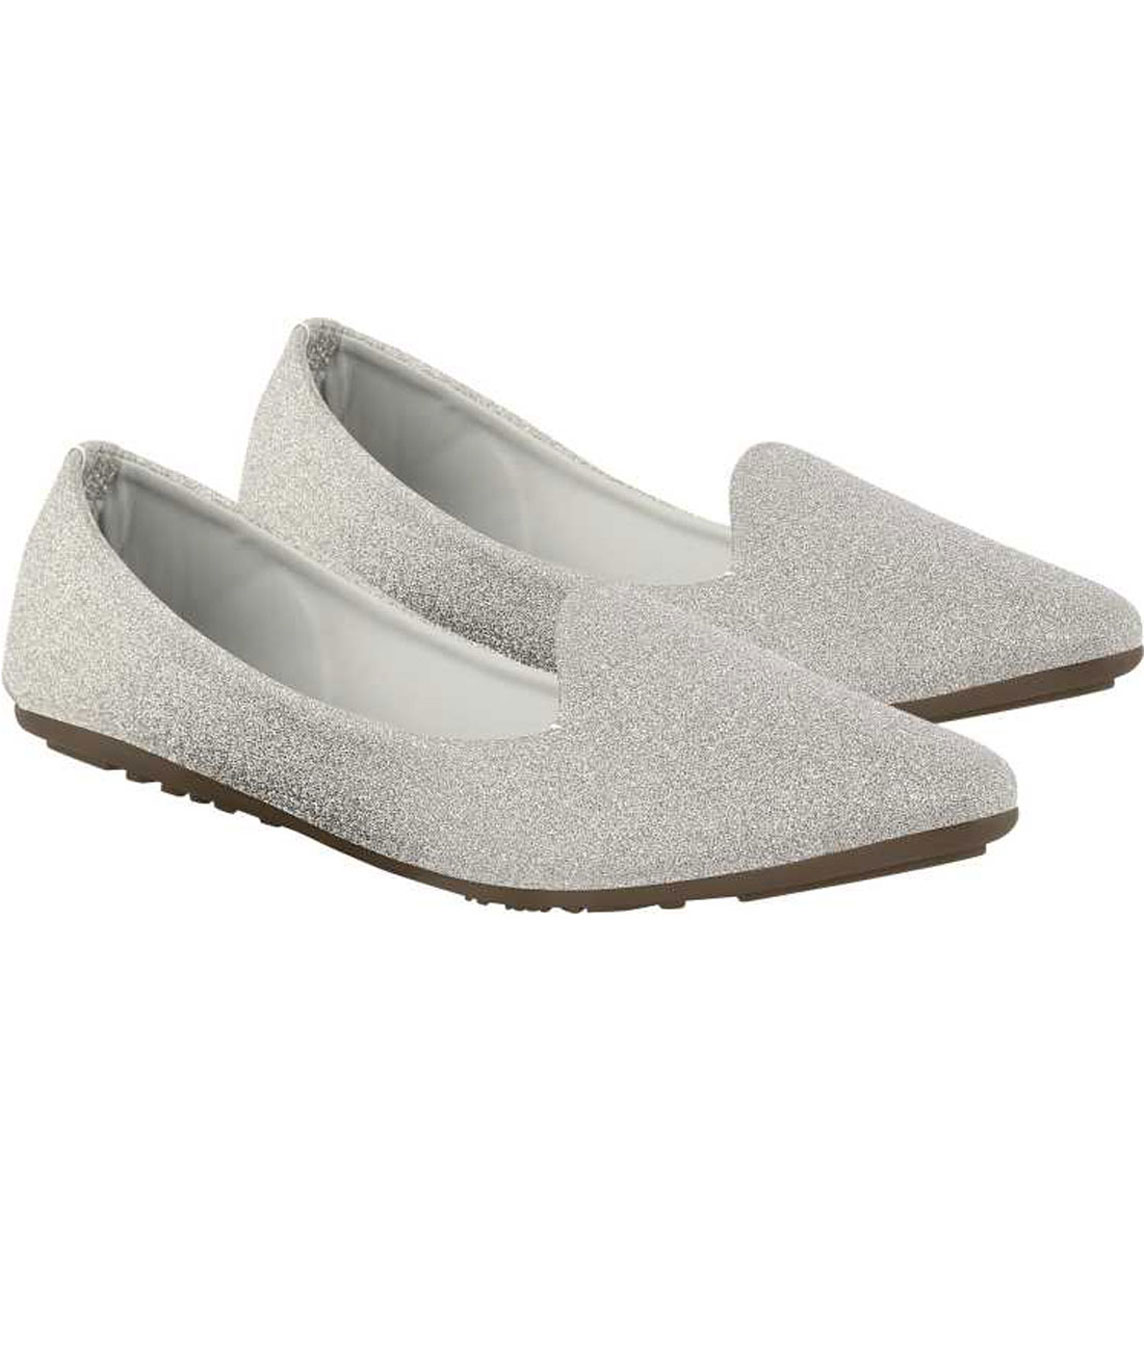 SHIMMER BELLIES FOR WOMEN (SILVER)